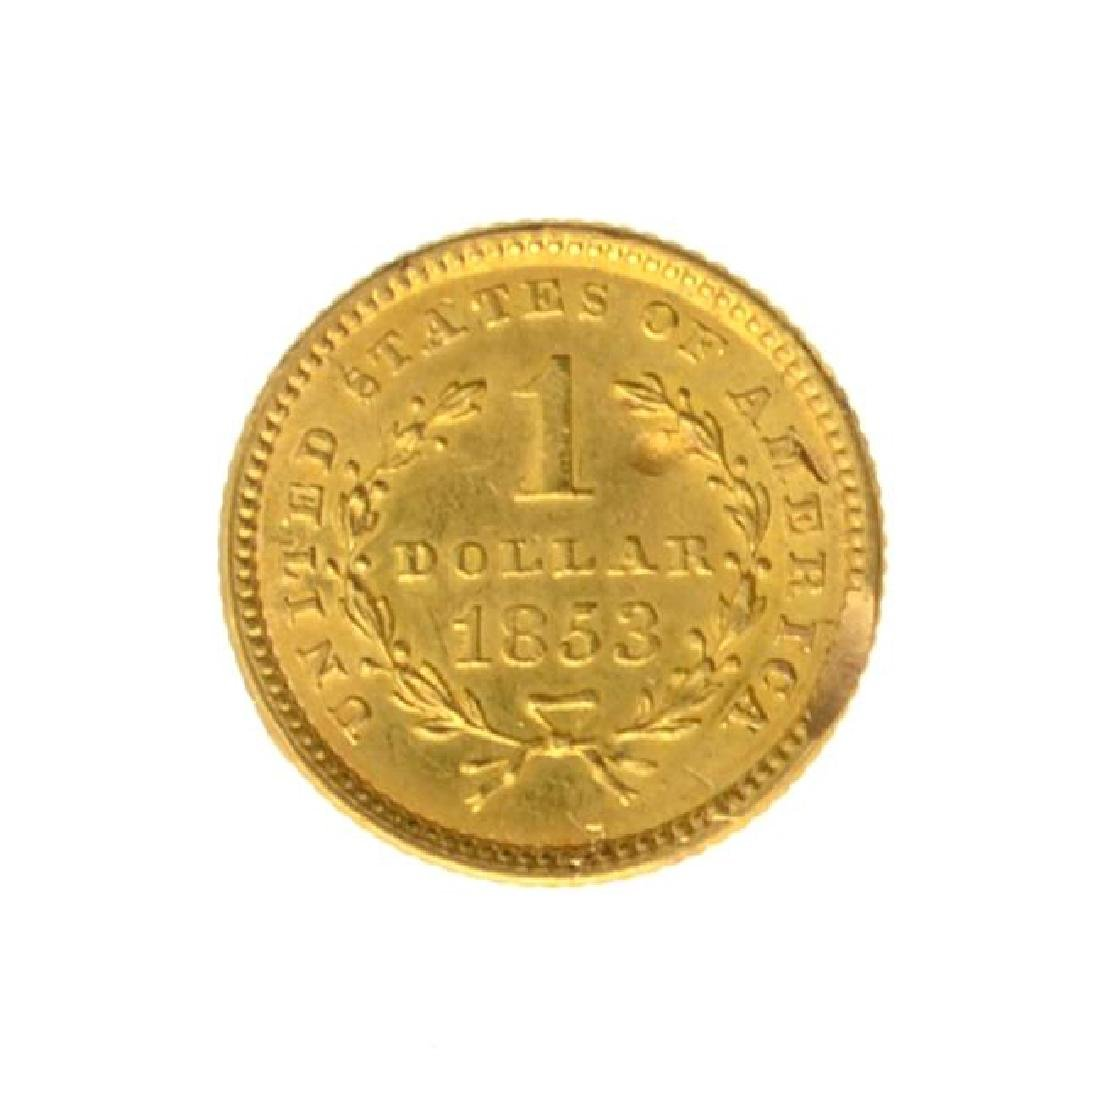 1853 $1 U.S. Liberty Head Gold Coin - Great Investment - 2